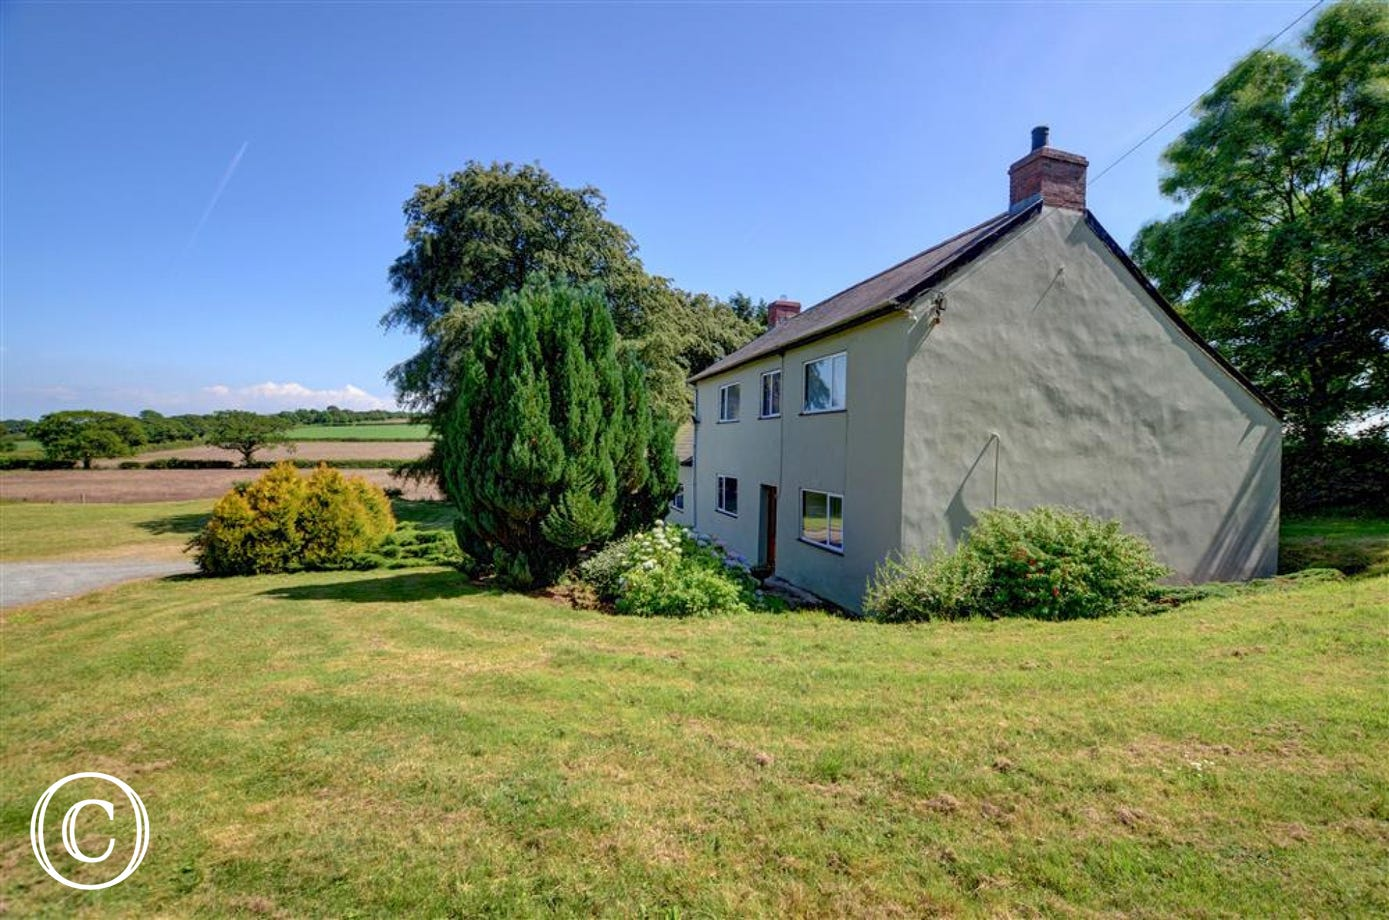 This extremely spacious and very old five-bedroomed farmhouse stands in its own grounds and is surrounded by 50 acres of farmland.